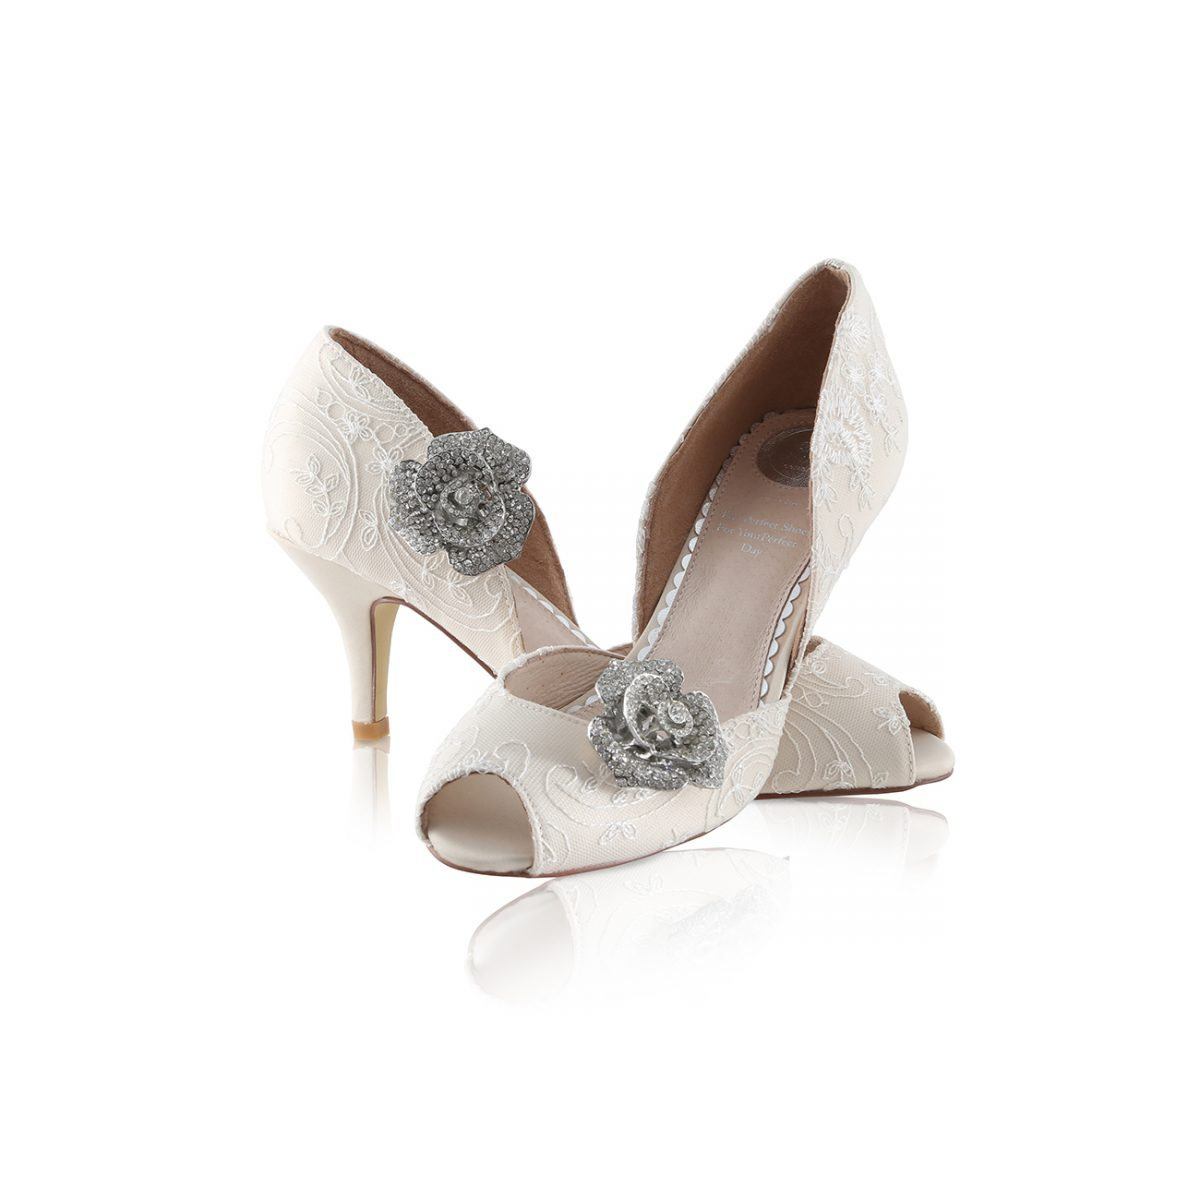 Perfect Bridal Peach Shoe Trim